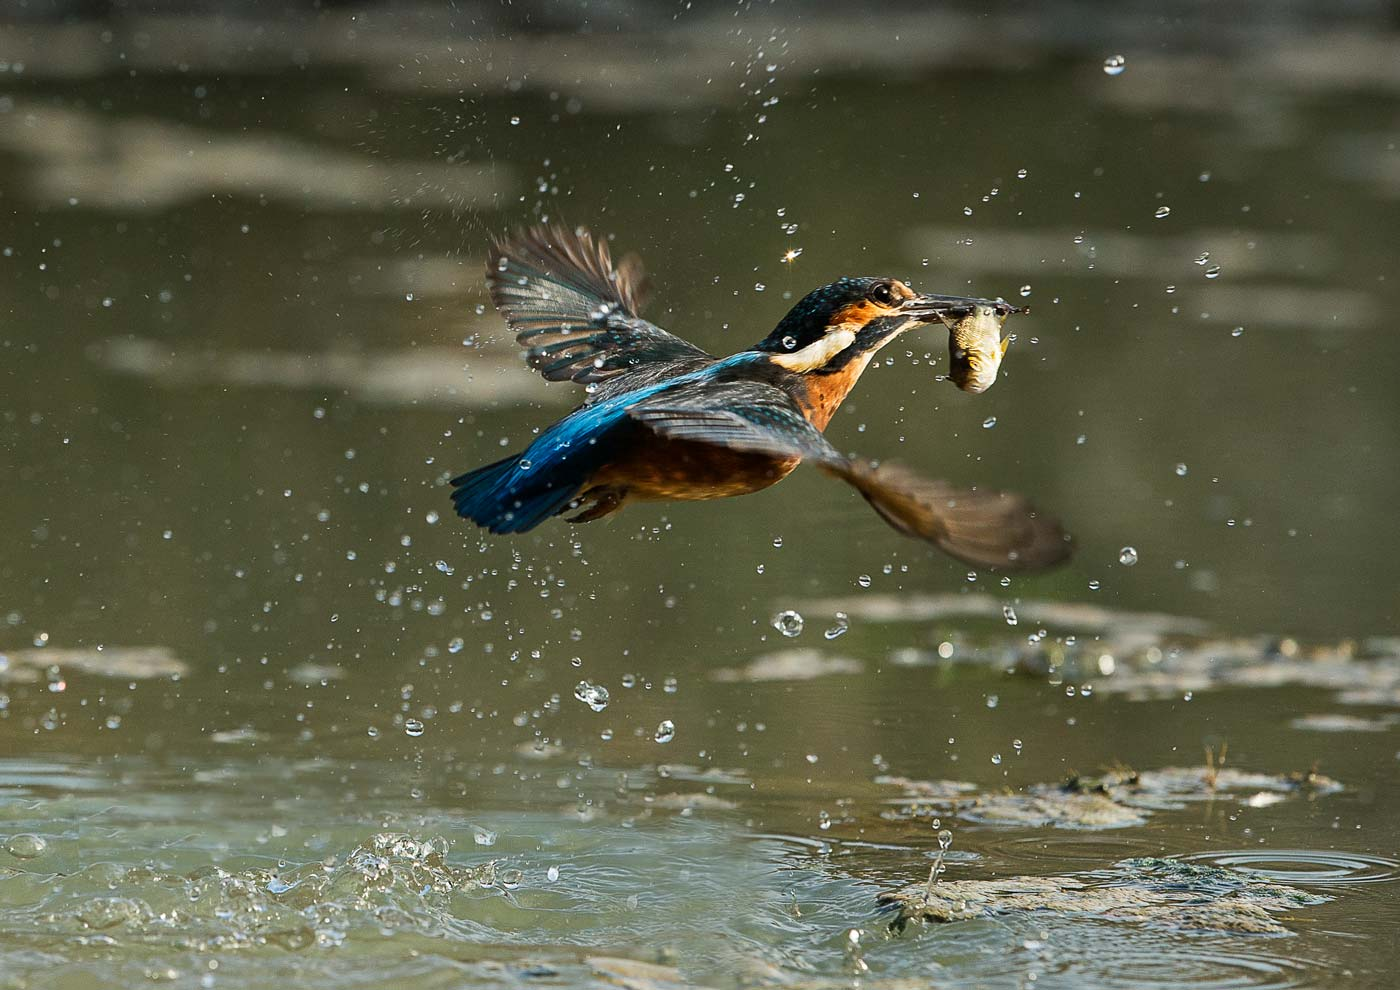 PWP_Kingfisher_AH0R0308A